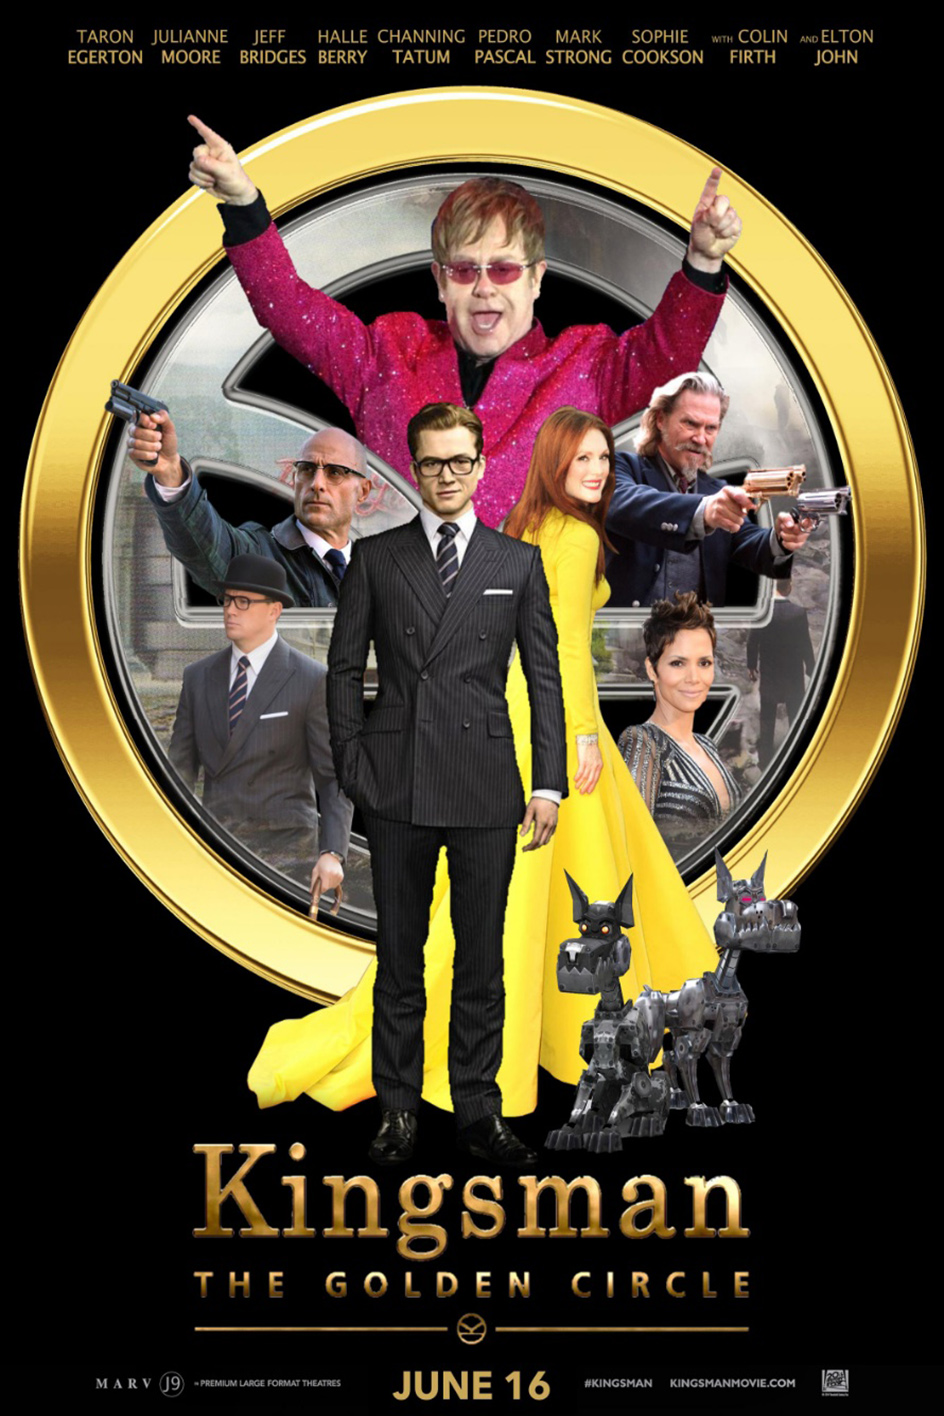 Kingsman The Golden Circle [2017 USA & UK Movie] Action, Adventure, Comedy